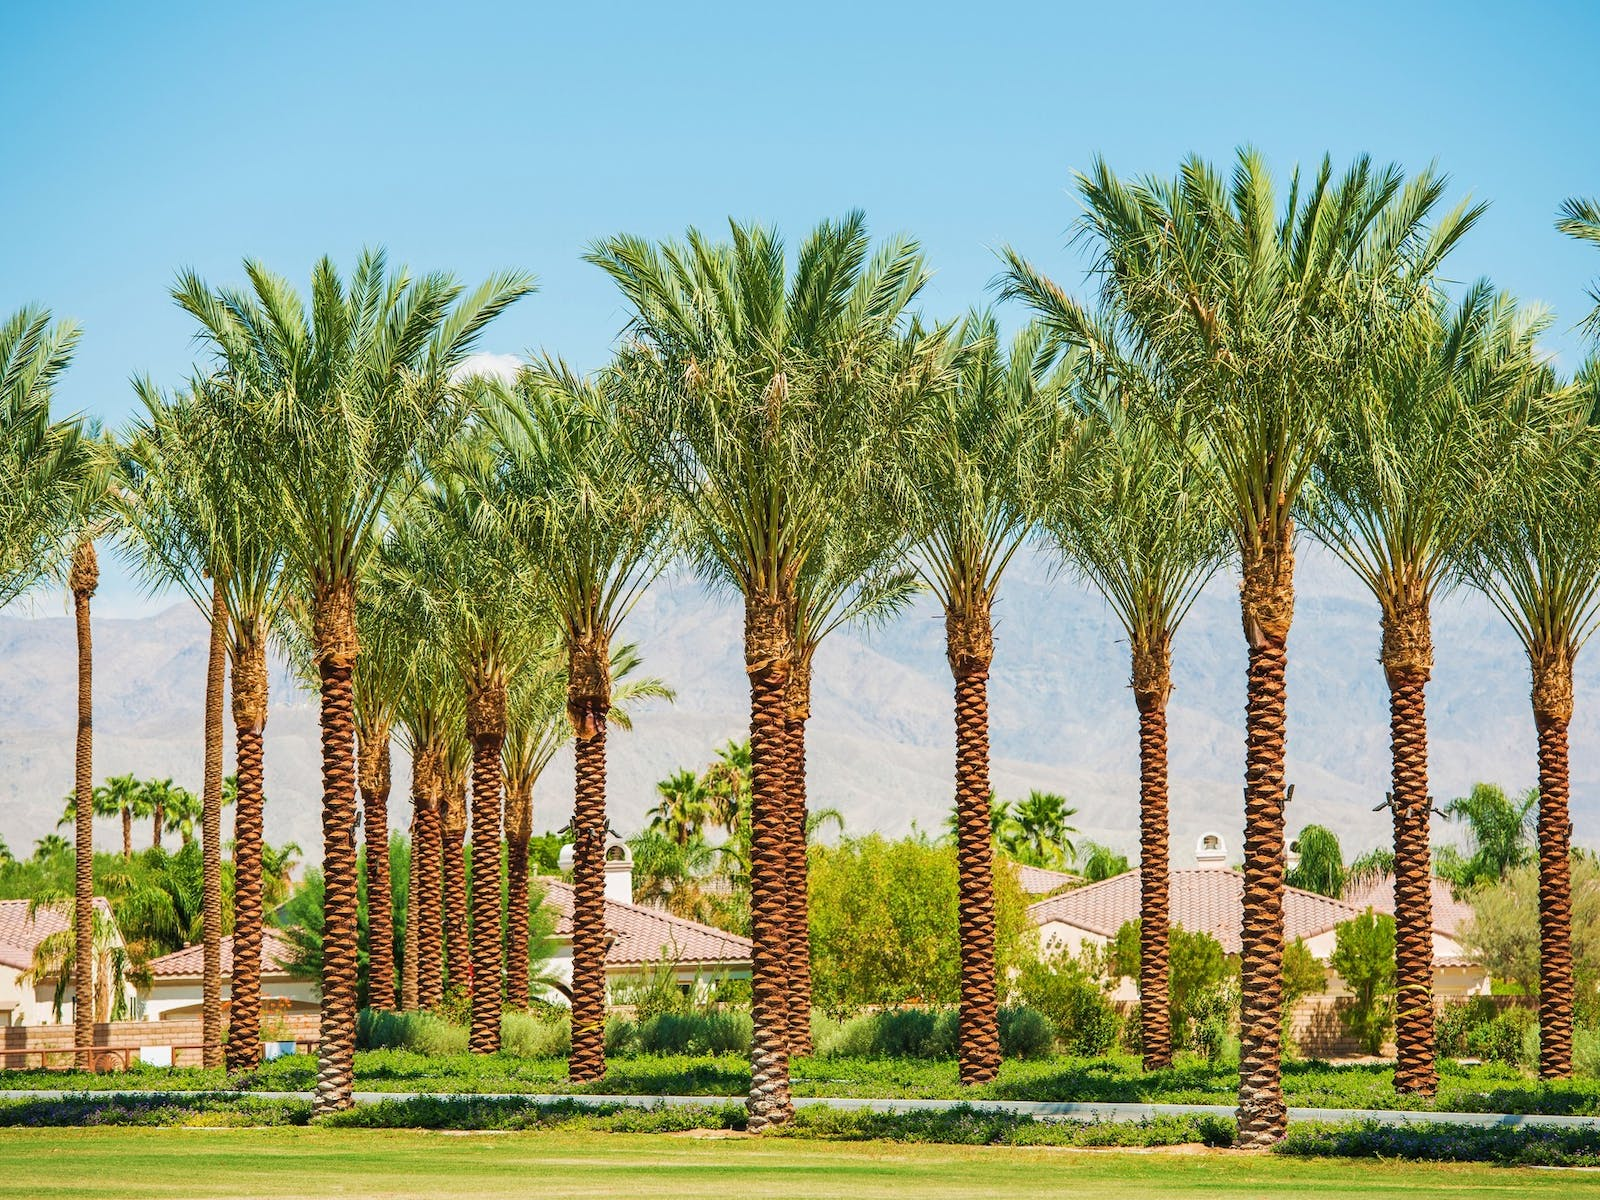 A grove of palm trees in Coachella Valley, CA